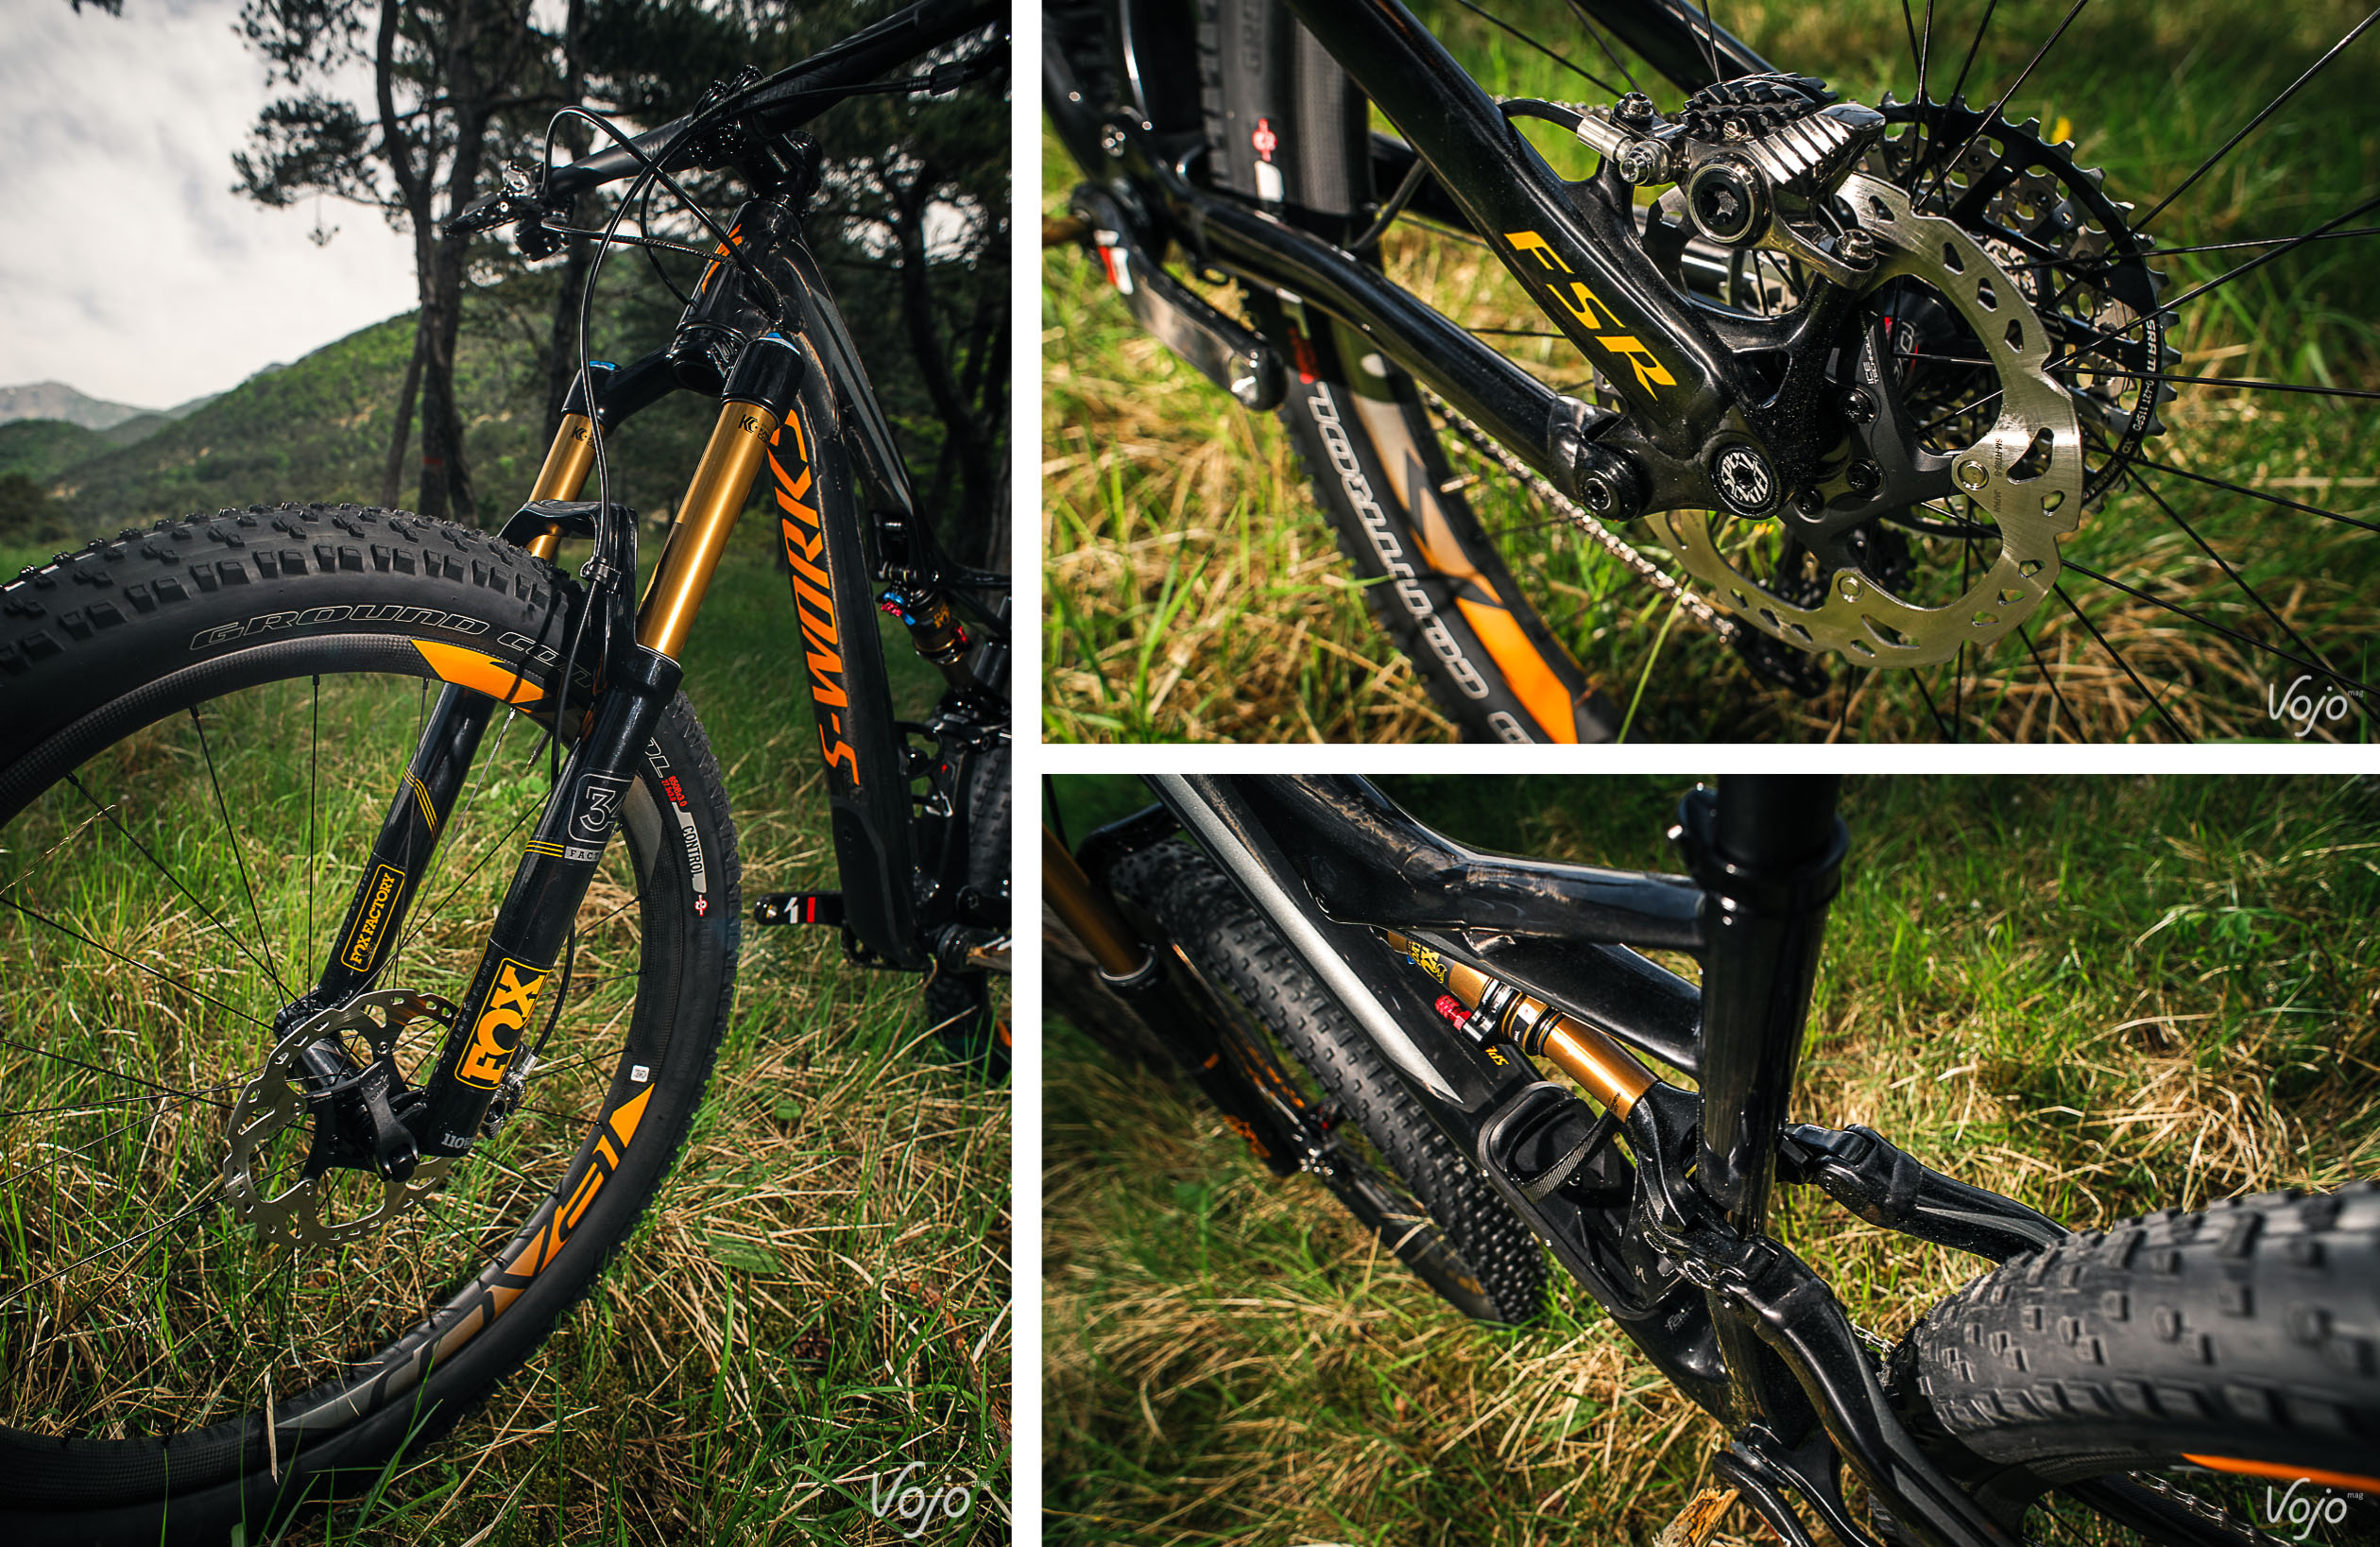 Compo_11_Specialized_Stumpjumper_2016_Swat_Copyright_OBeart_VojoMag-1